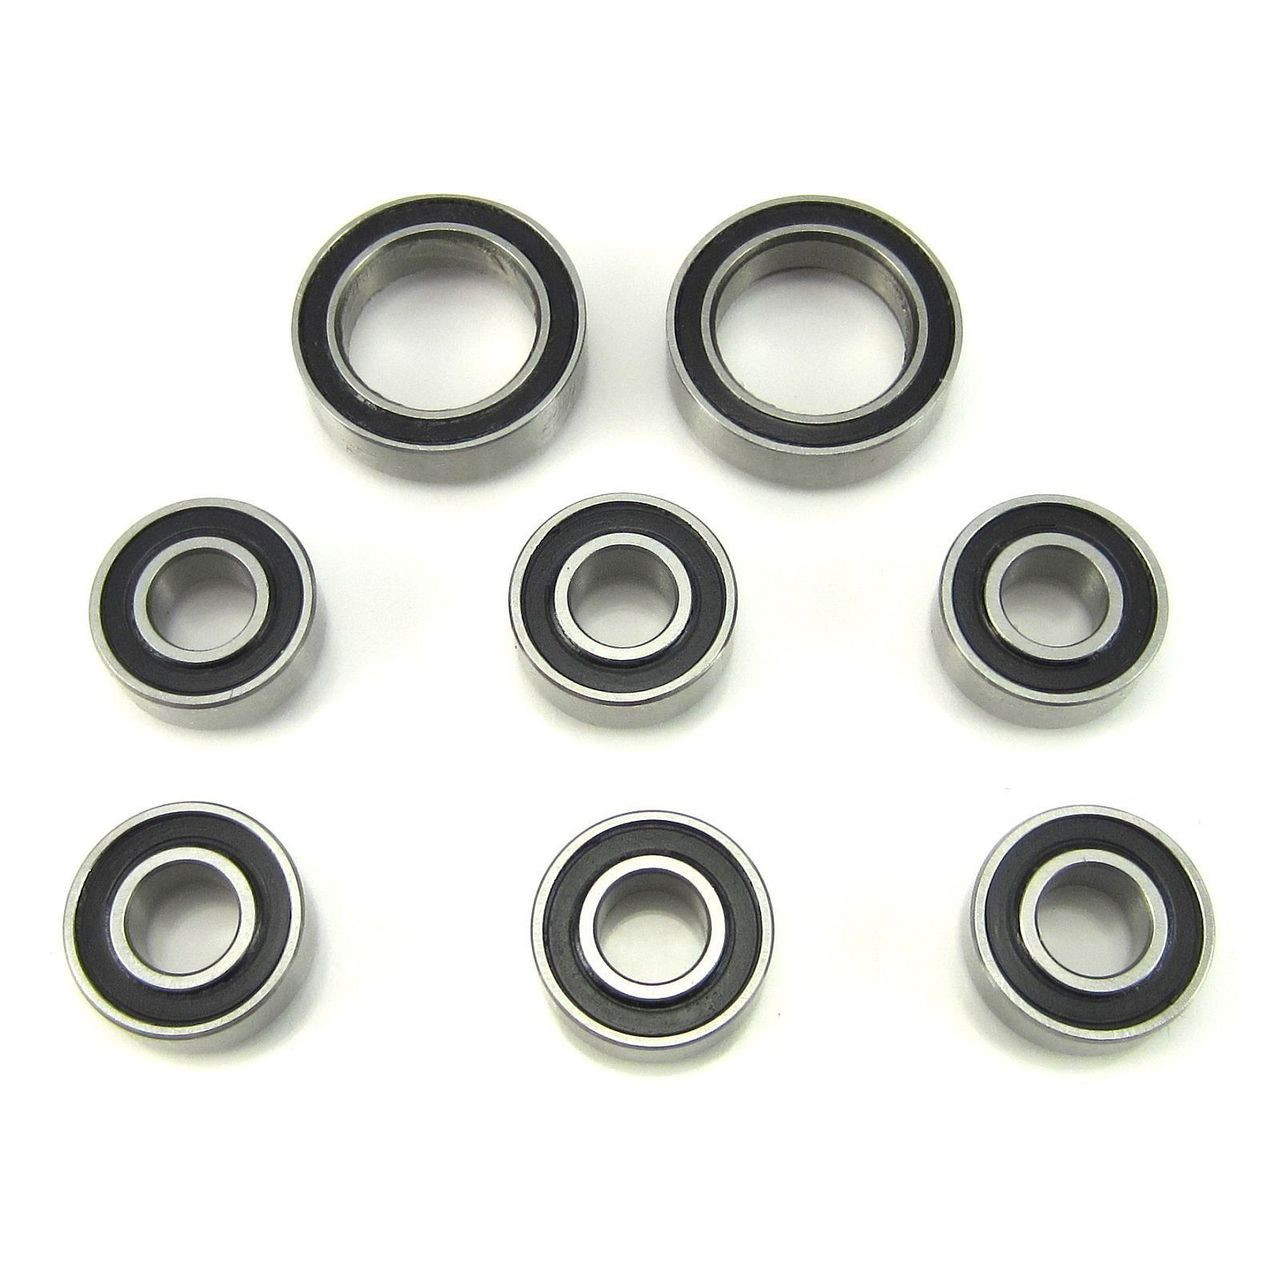 TRB RC Wheel Hub Bearings 5x11x4mm-10x15x4mm 4x4 Slash Stampede